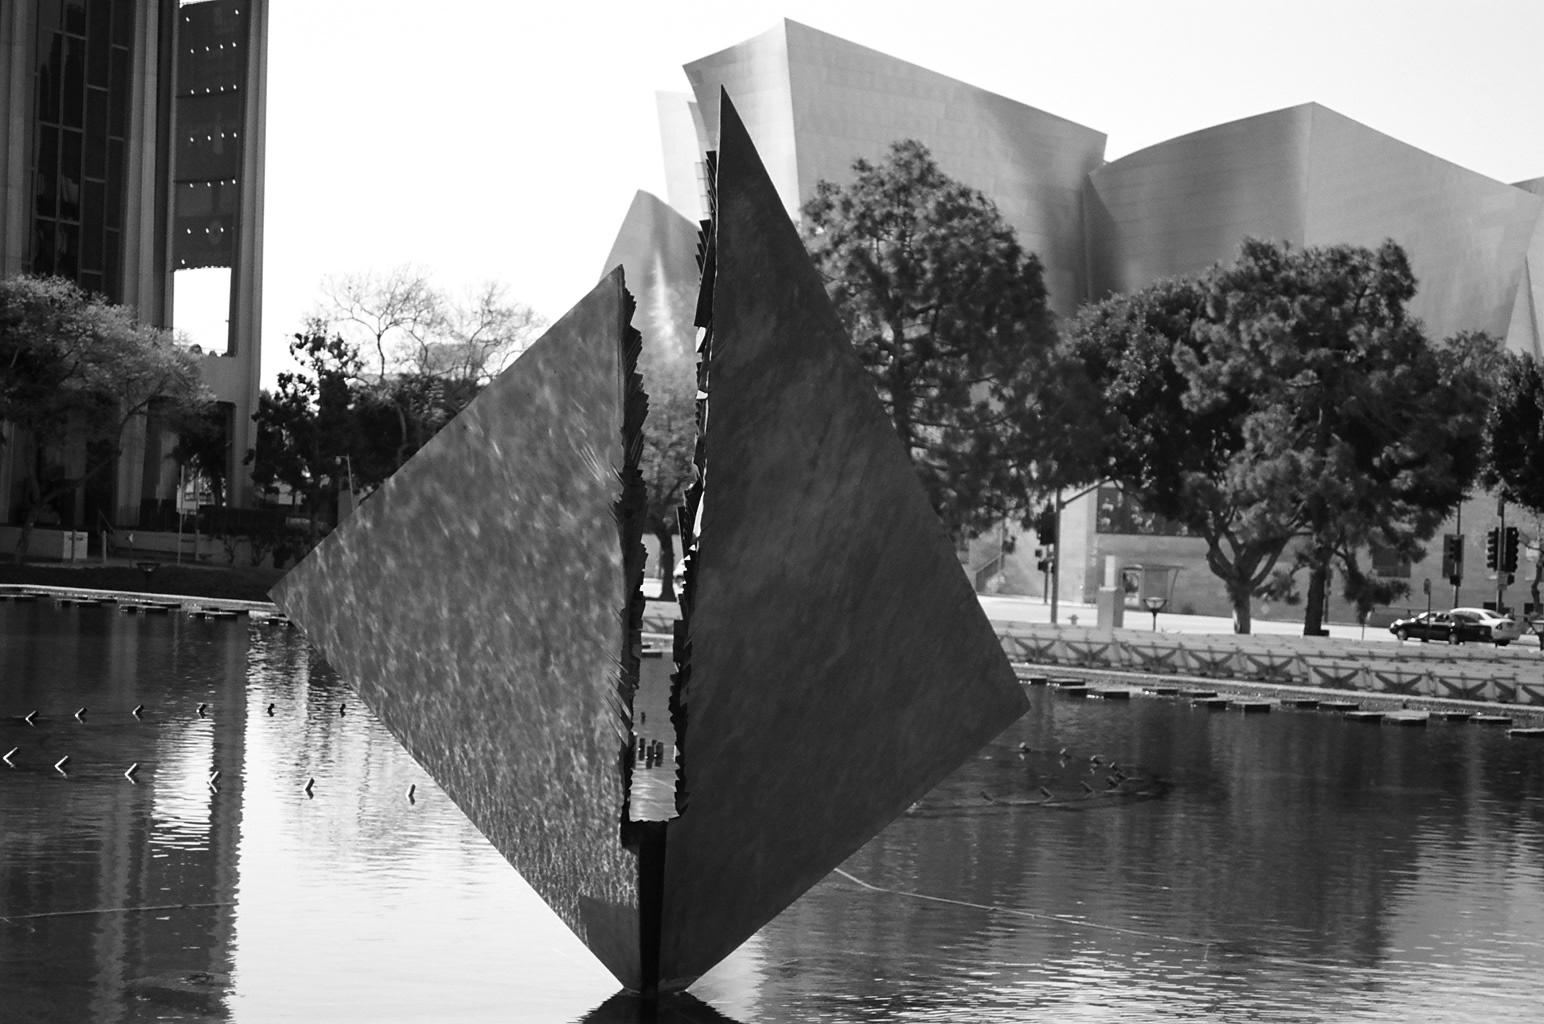 Sculpture Next To DWP Building, Disney Hall In Background